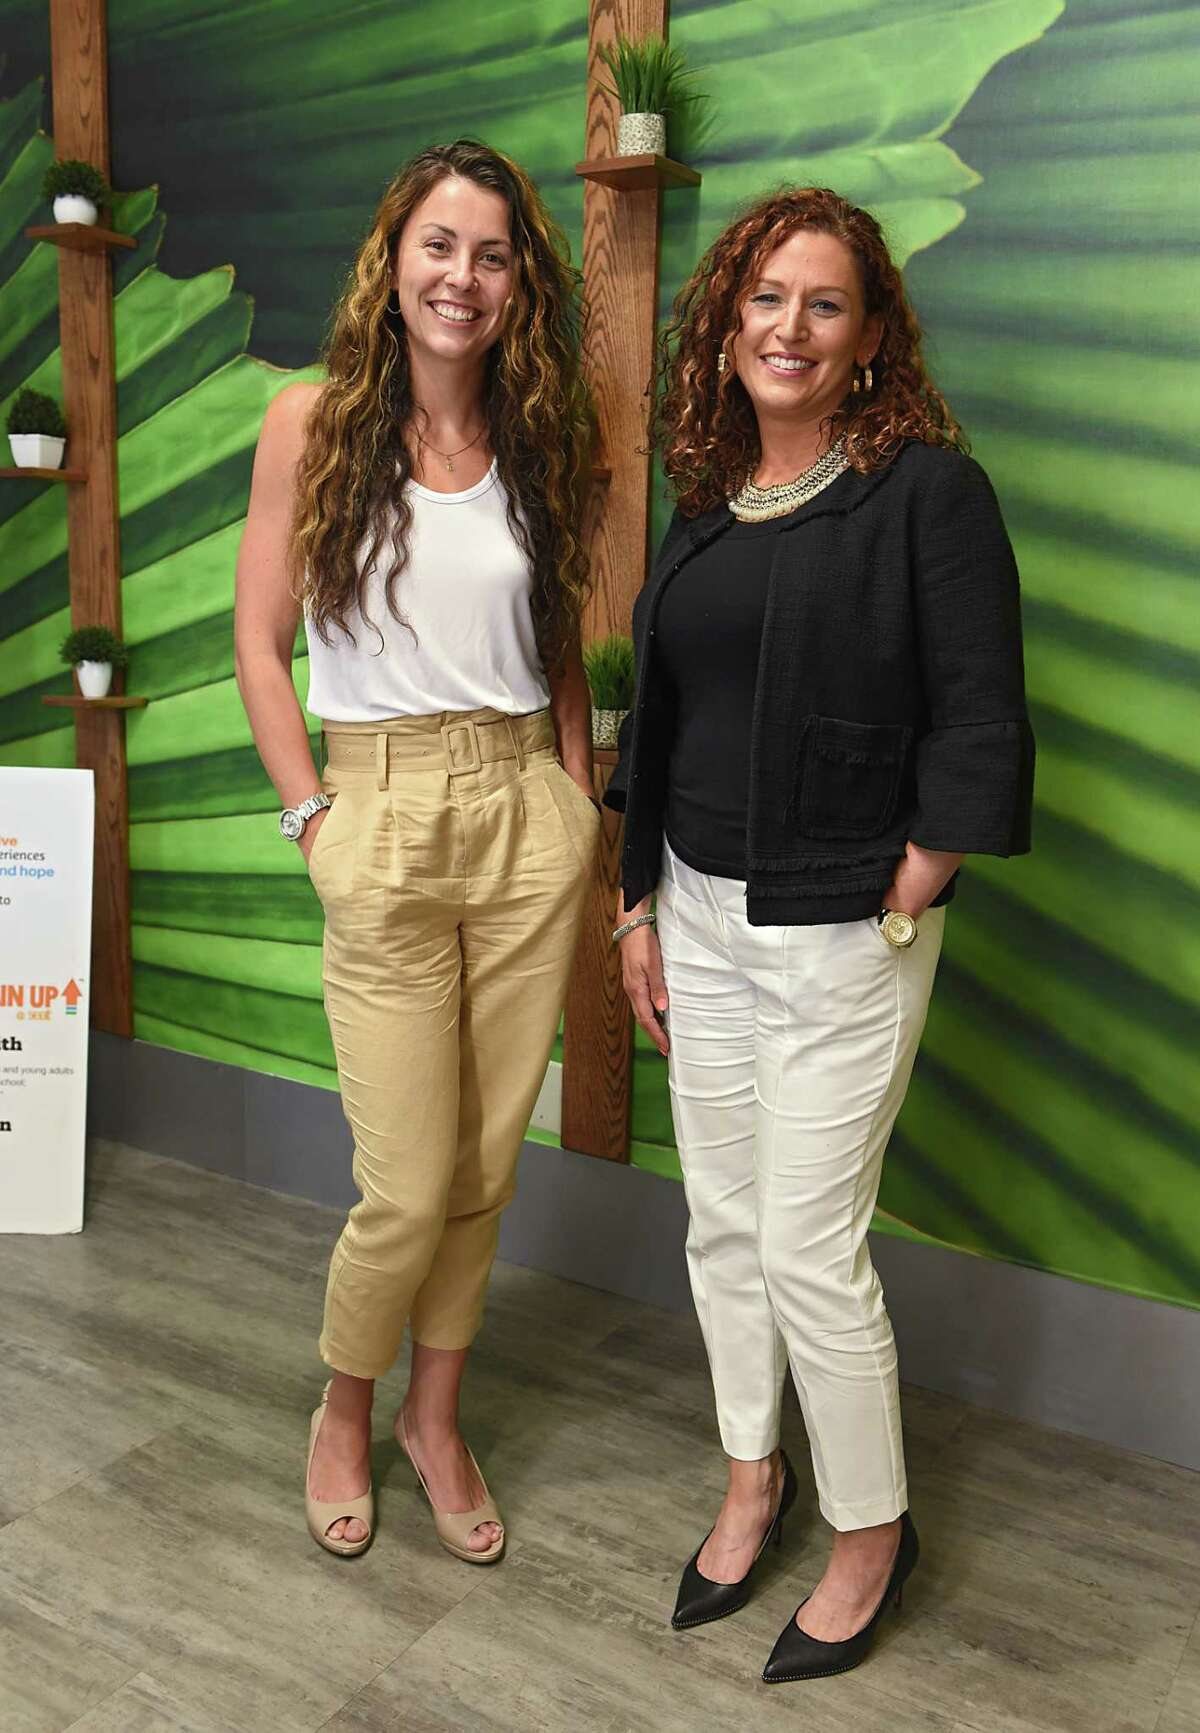 Emily Dessingue, former business development manager for Cresa, left, and Jennifer Lawrence, executive director of Social Enterprise and Training Center (SEAT) stand in a conference room at the SEAT Center on Tuesday, July 23, 2019 in Schenectady, N.Y. As of mid-August, Emily has accepted a position at the center. (Lori Van Buren/Times Union)